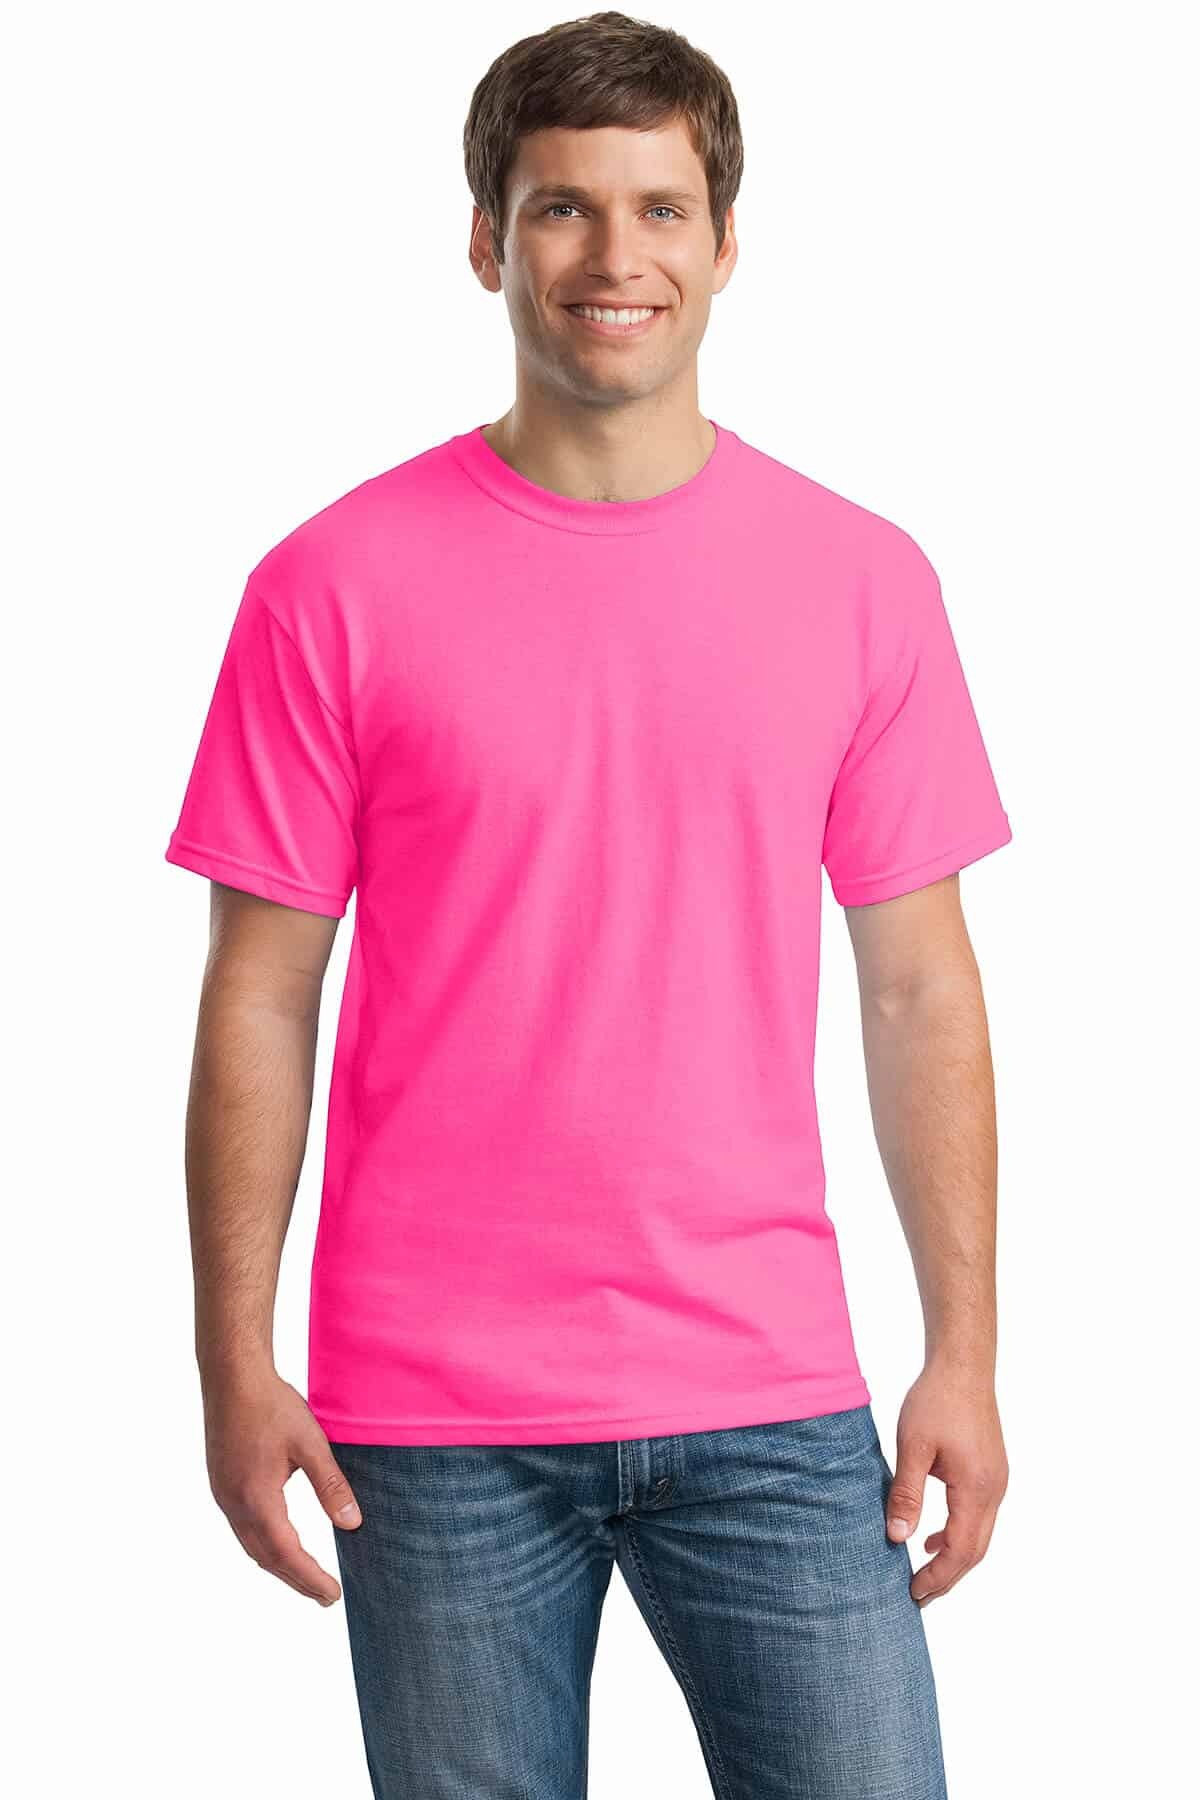 Safety Pink Tee Front